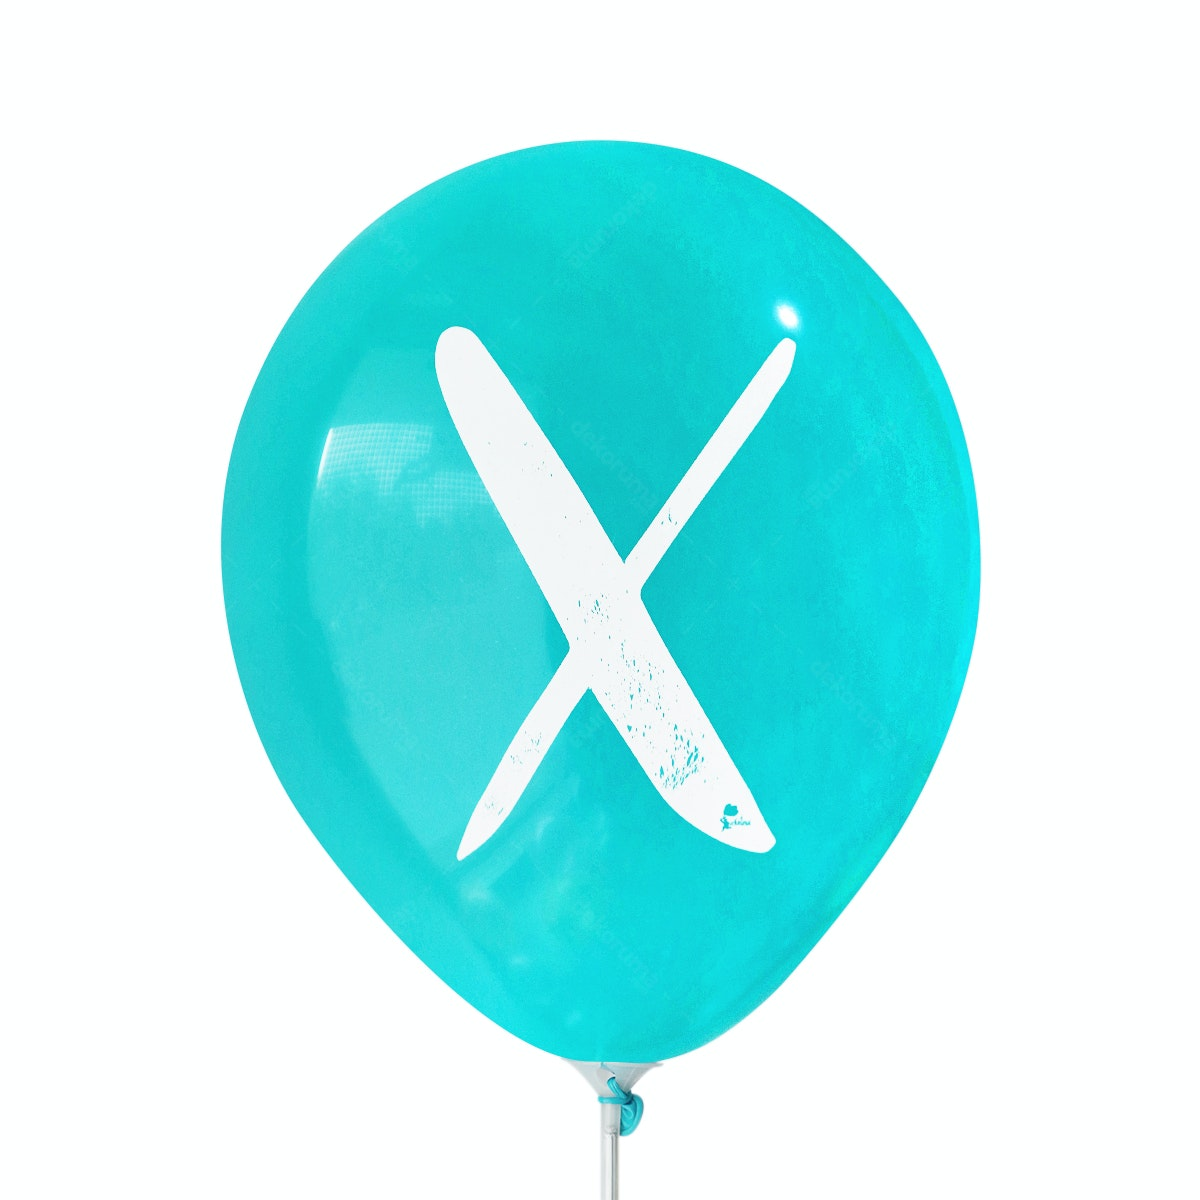 Adalima Balloon Balon Latex Alphabet Tosca Qq